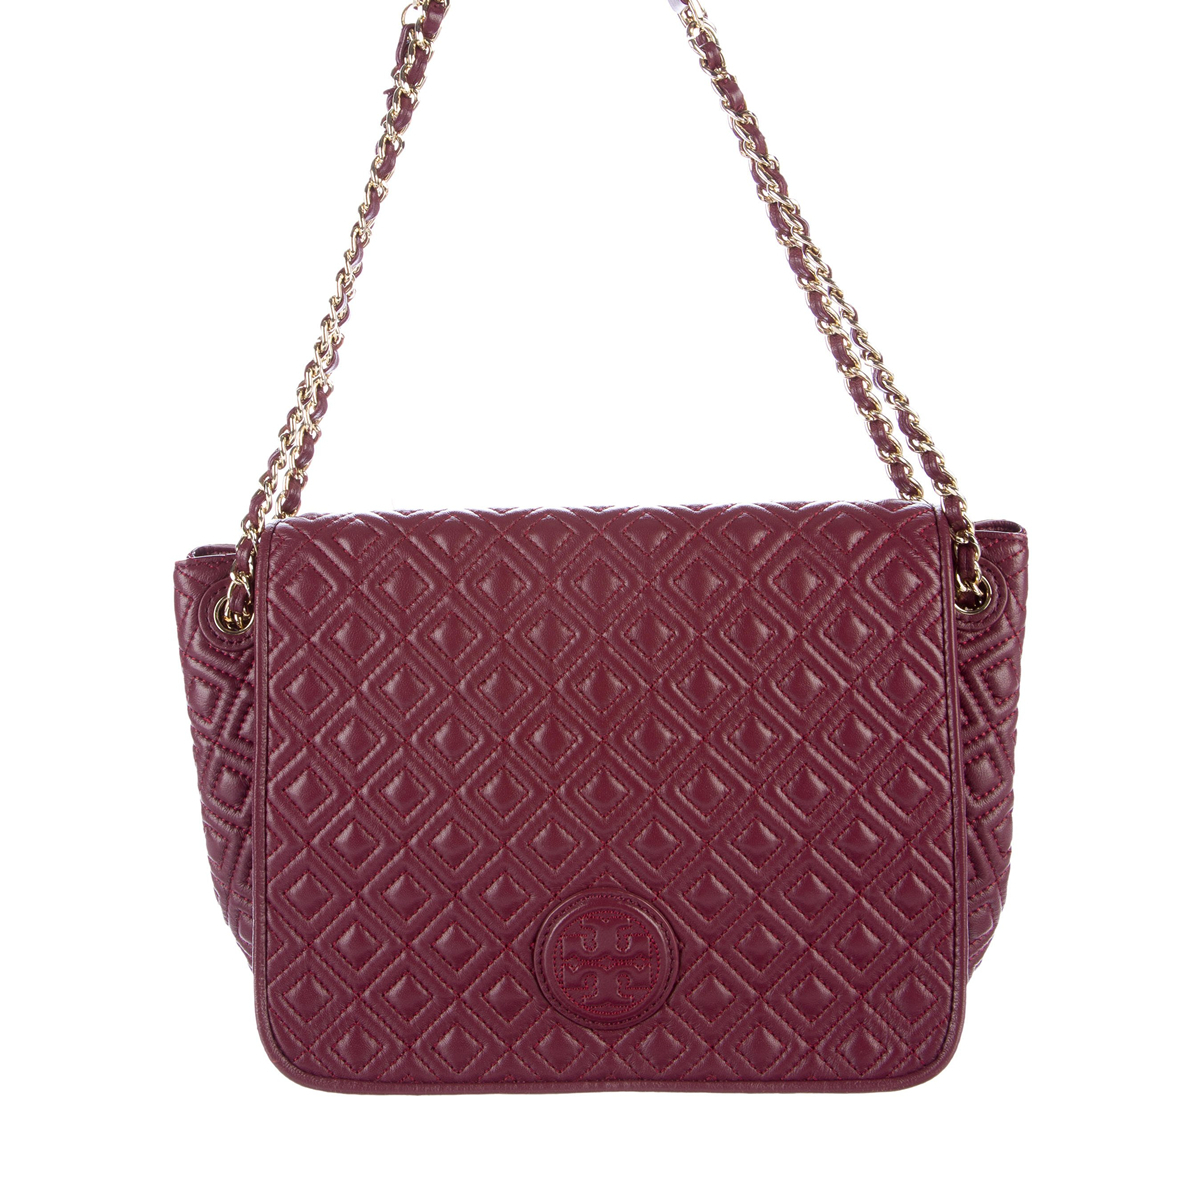 98b401c7eca1 Wto103364 1 enlarged. Wto103364 1 enlarged. Previous. NWT Tory Burch Marion  Quilted Small Flap Shoulder Bag